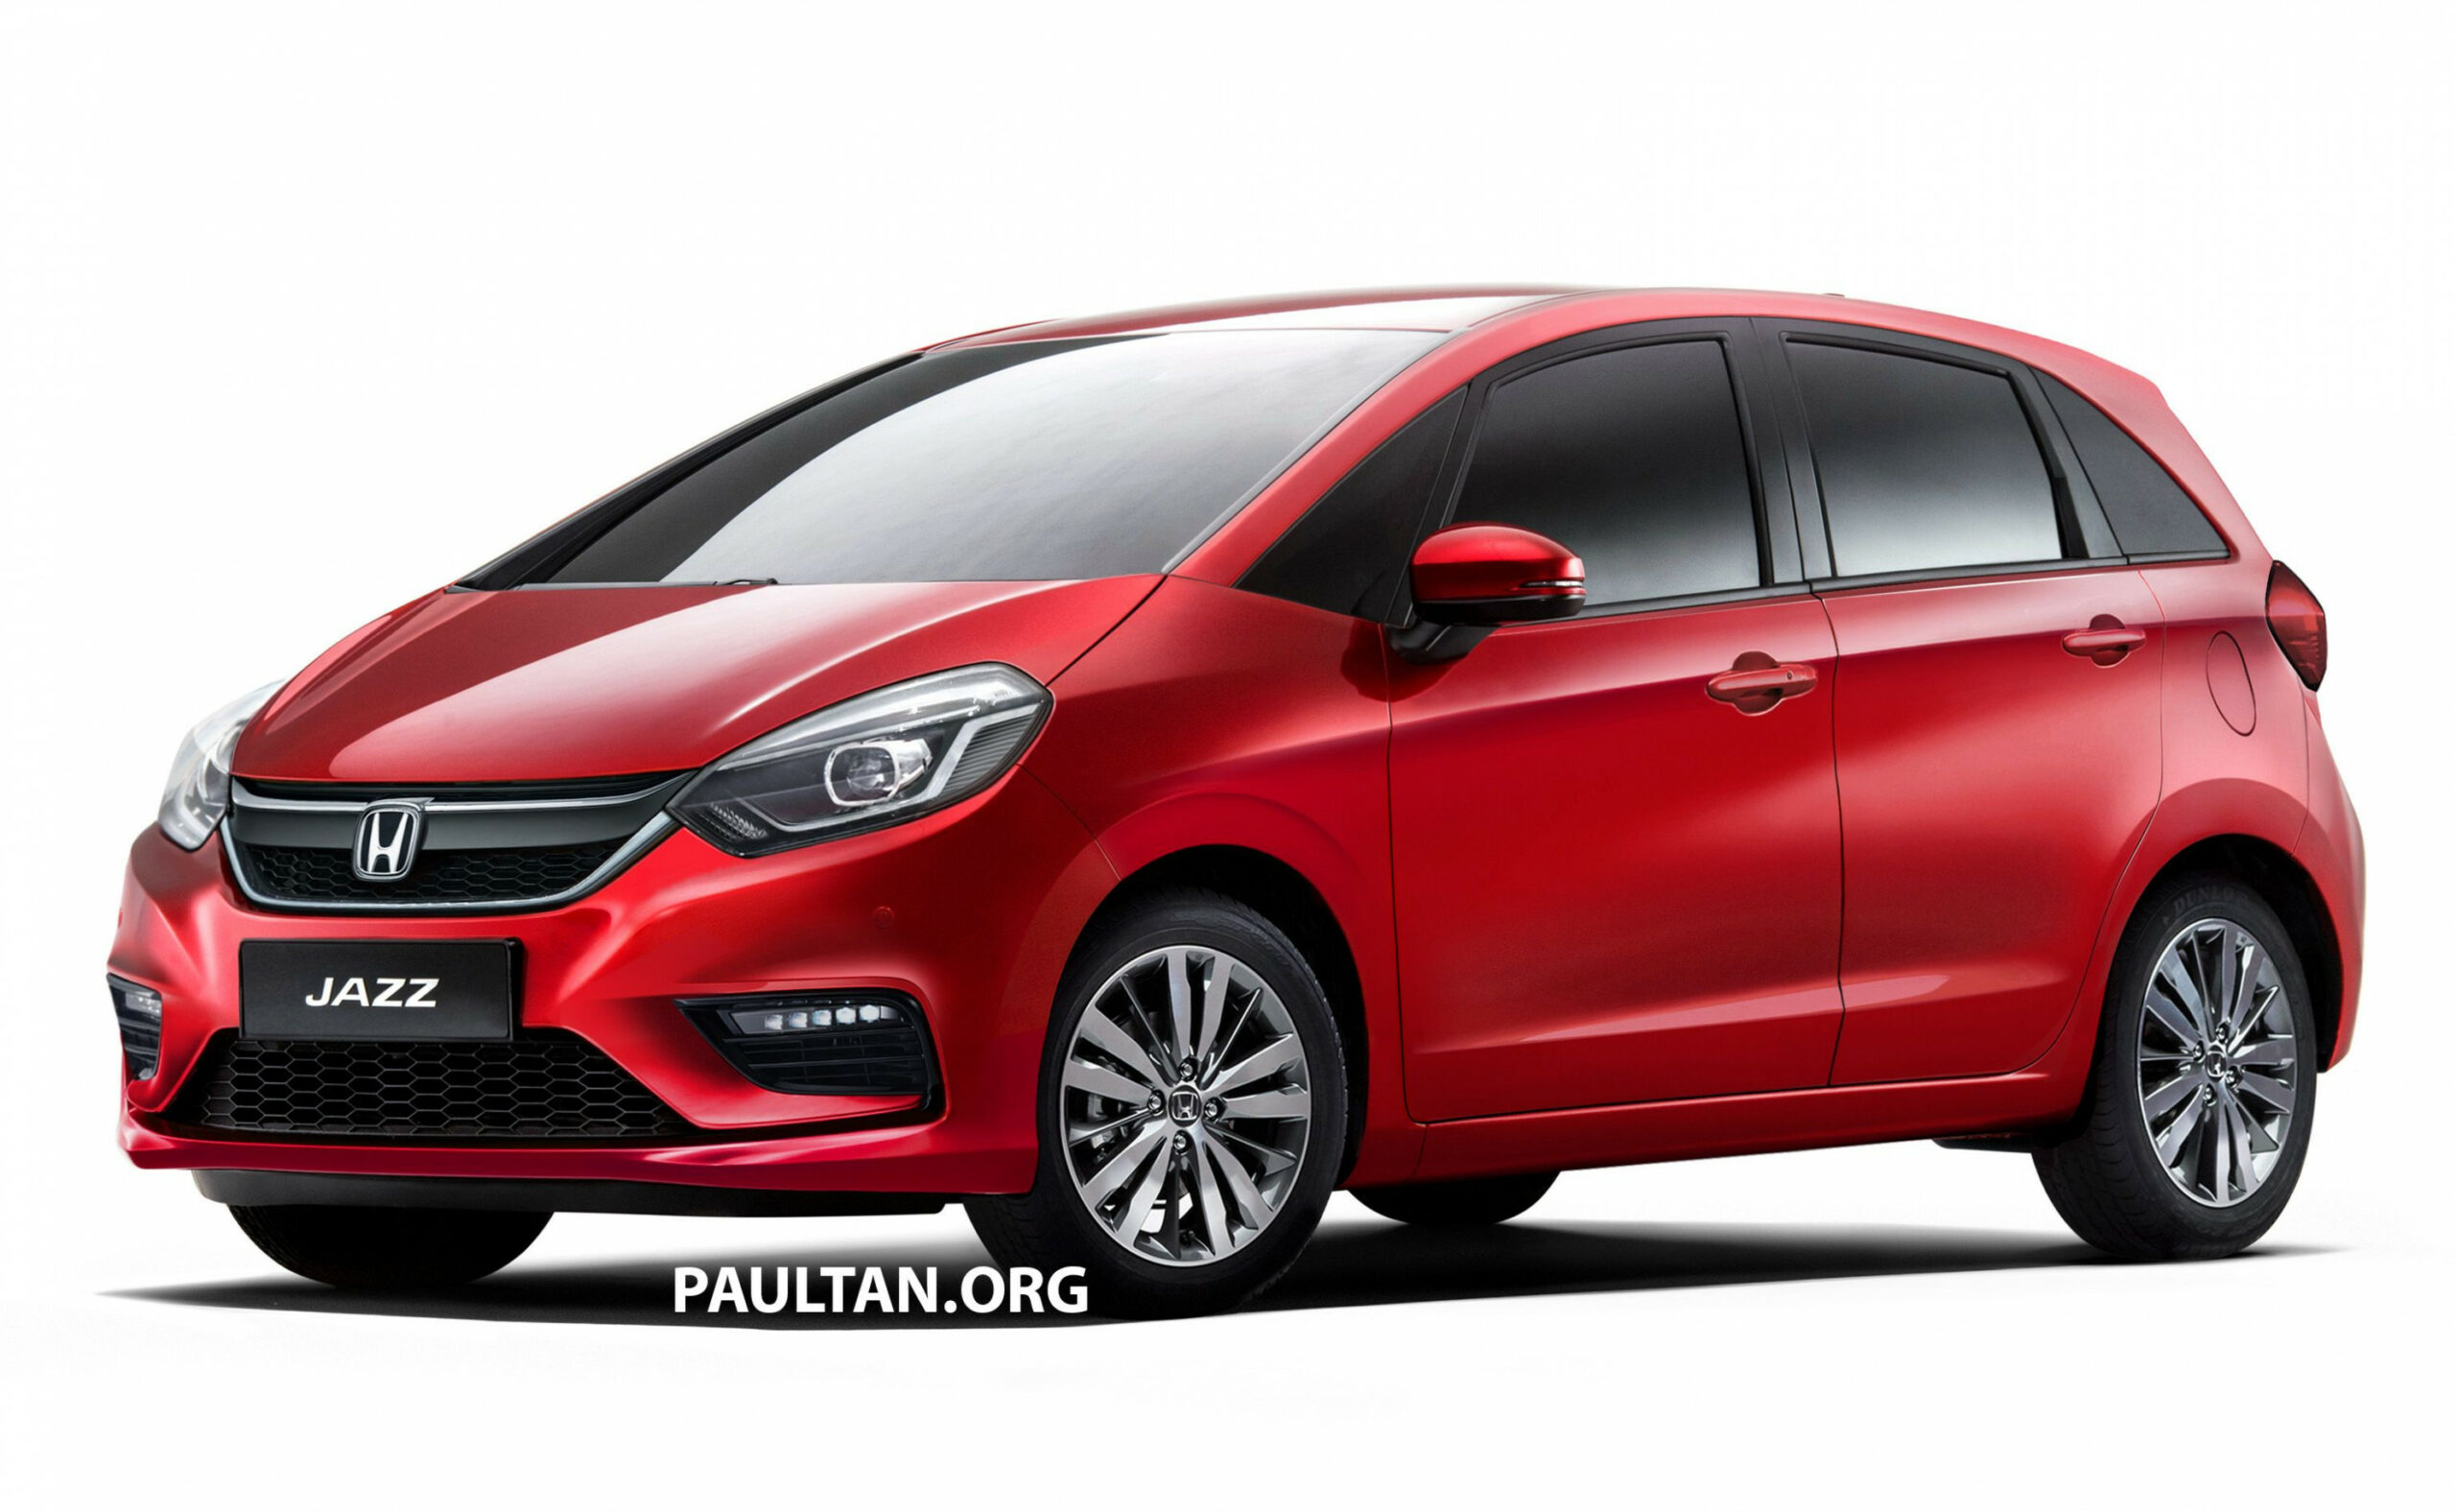 honda jazz 12 price malaysia Review, specs and Release date 12 ..